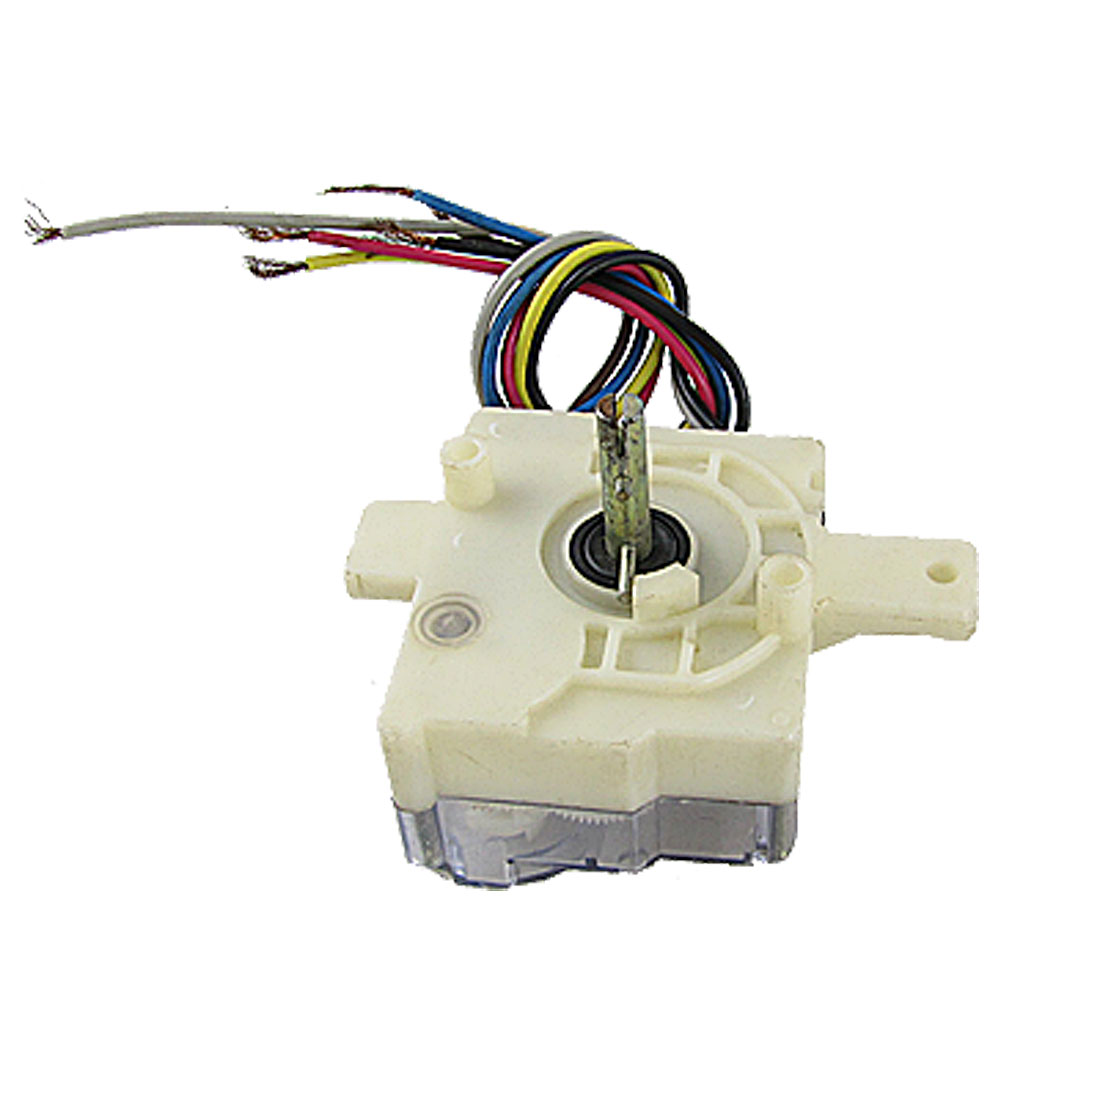 Washing Machine Parts 6 Wires Time Controller Timer AC 250V 3A